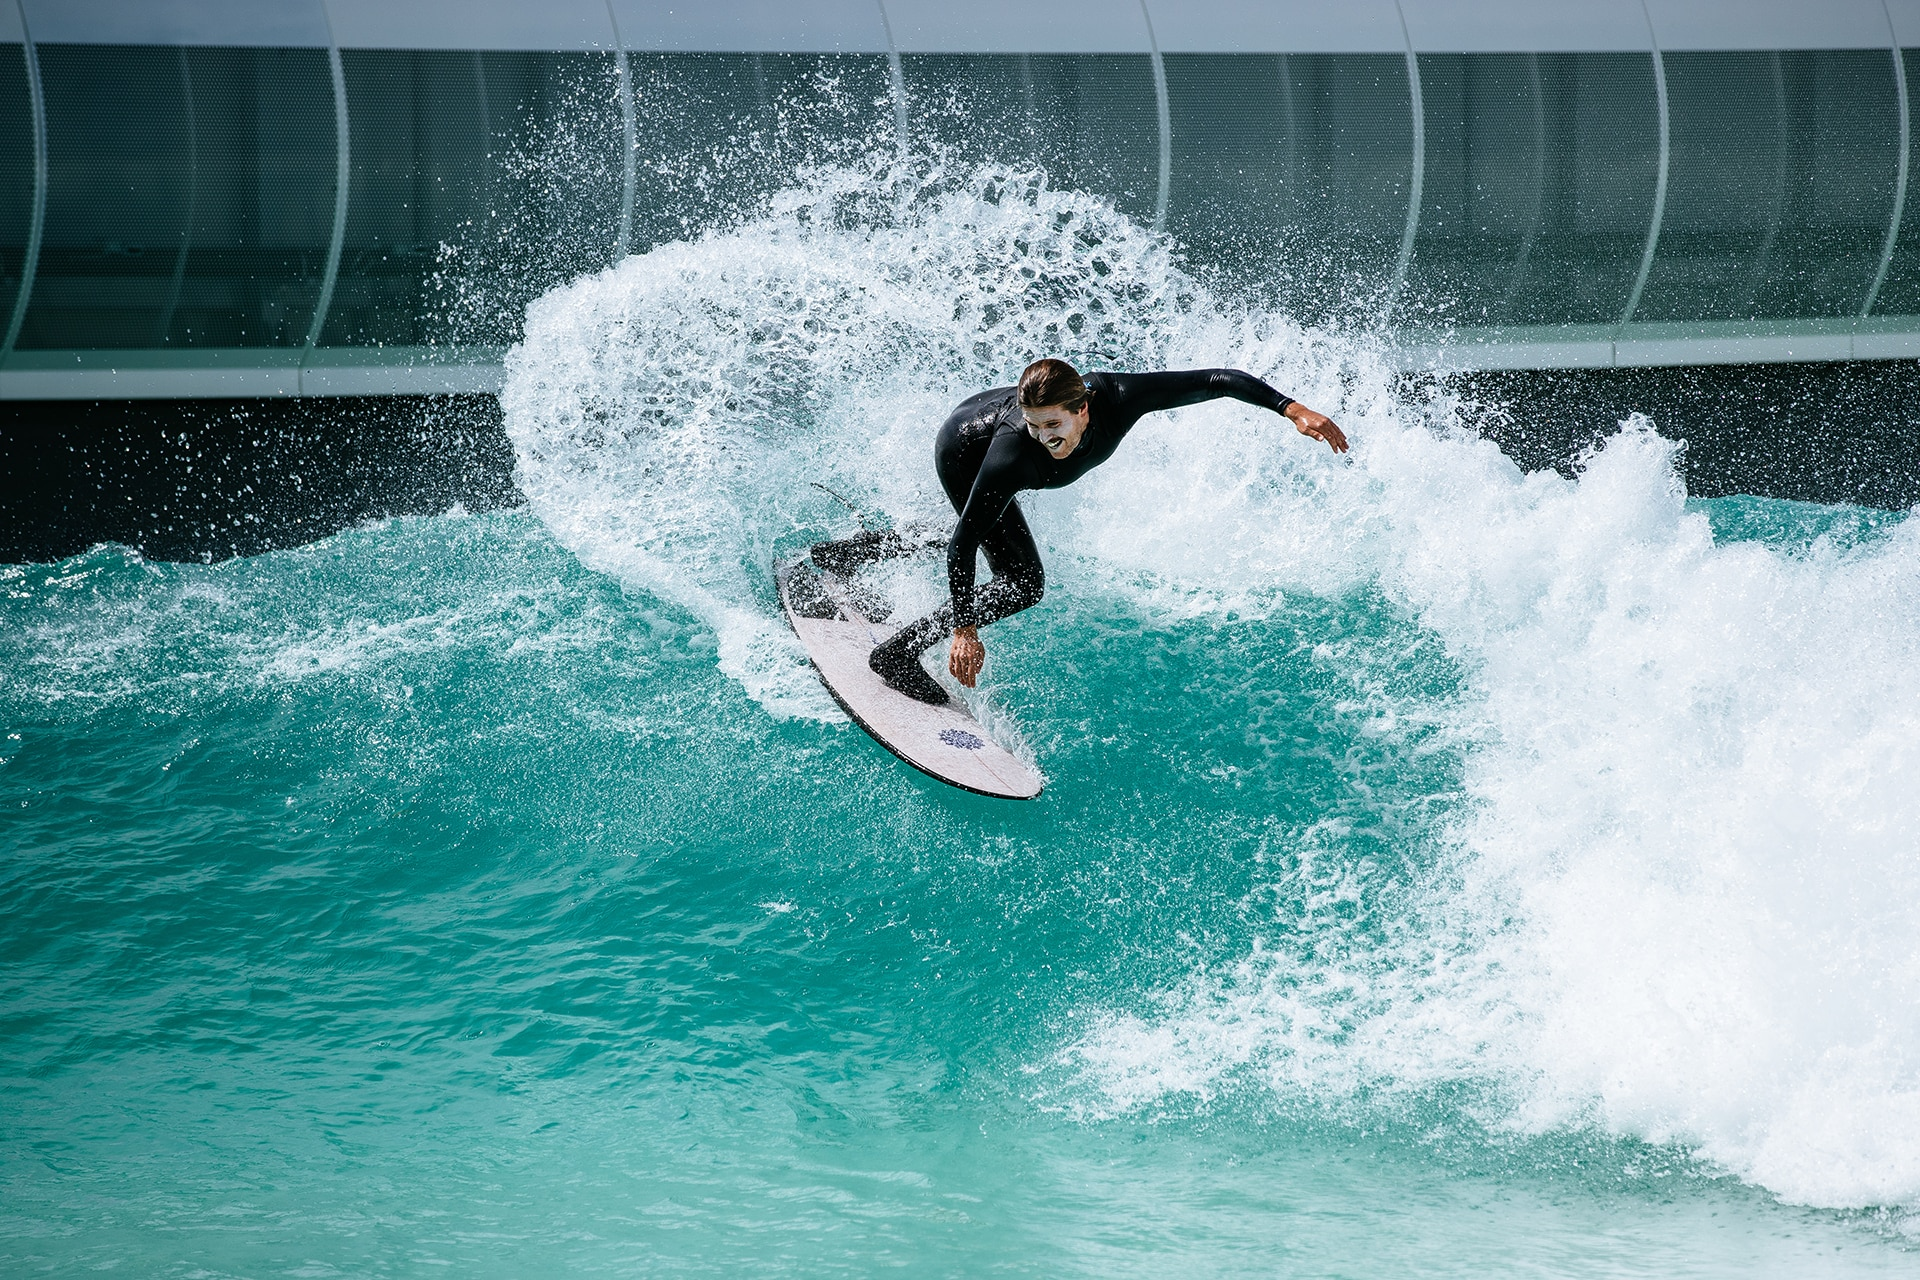 Road Test: Surfing The Waves Of Australia's Wild New Surf Park, Urbnsurf